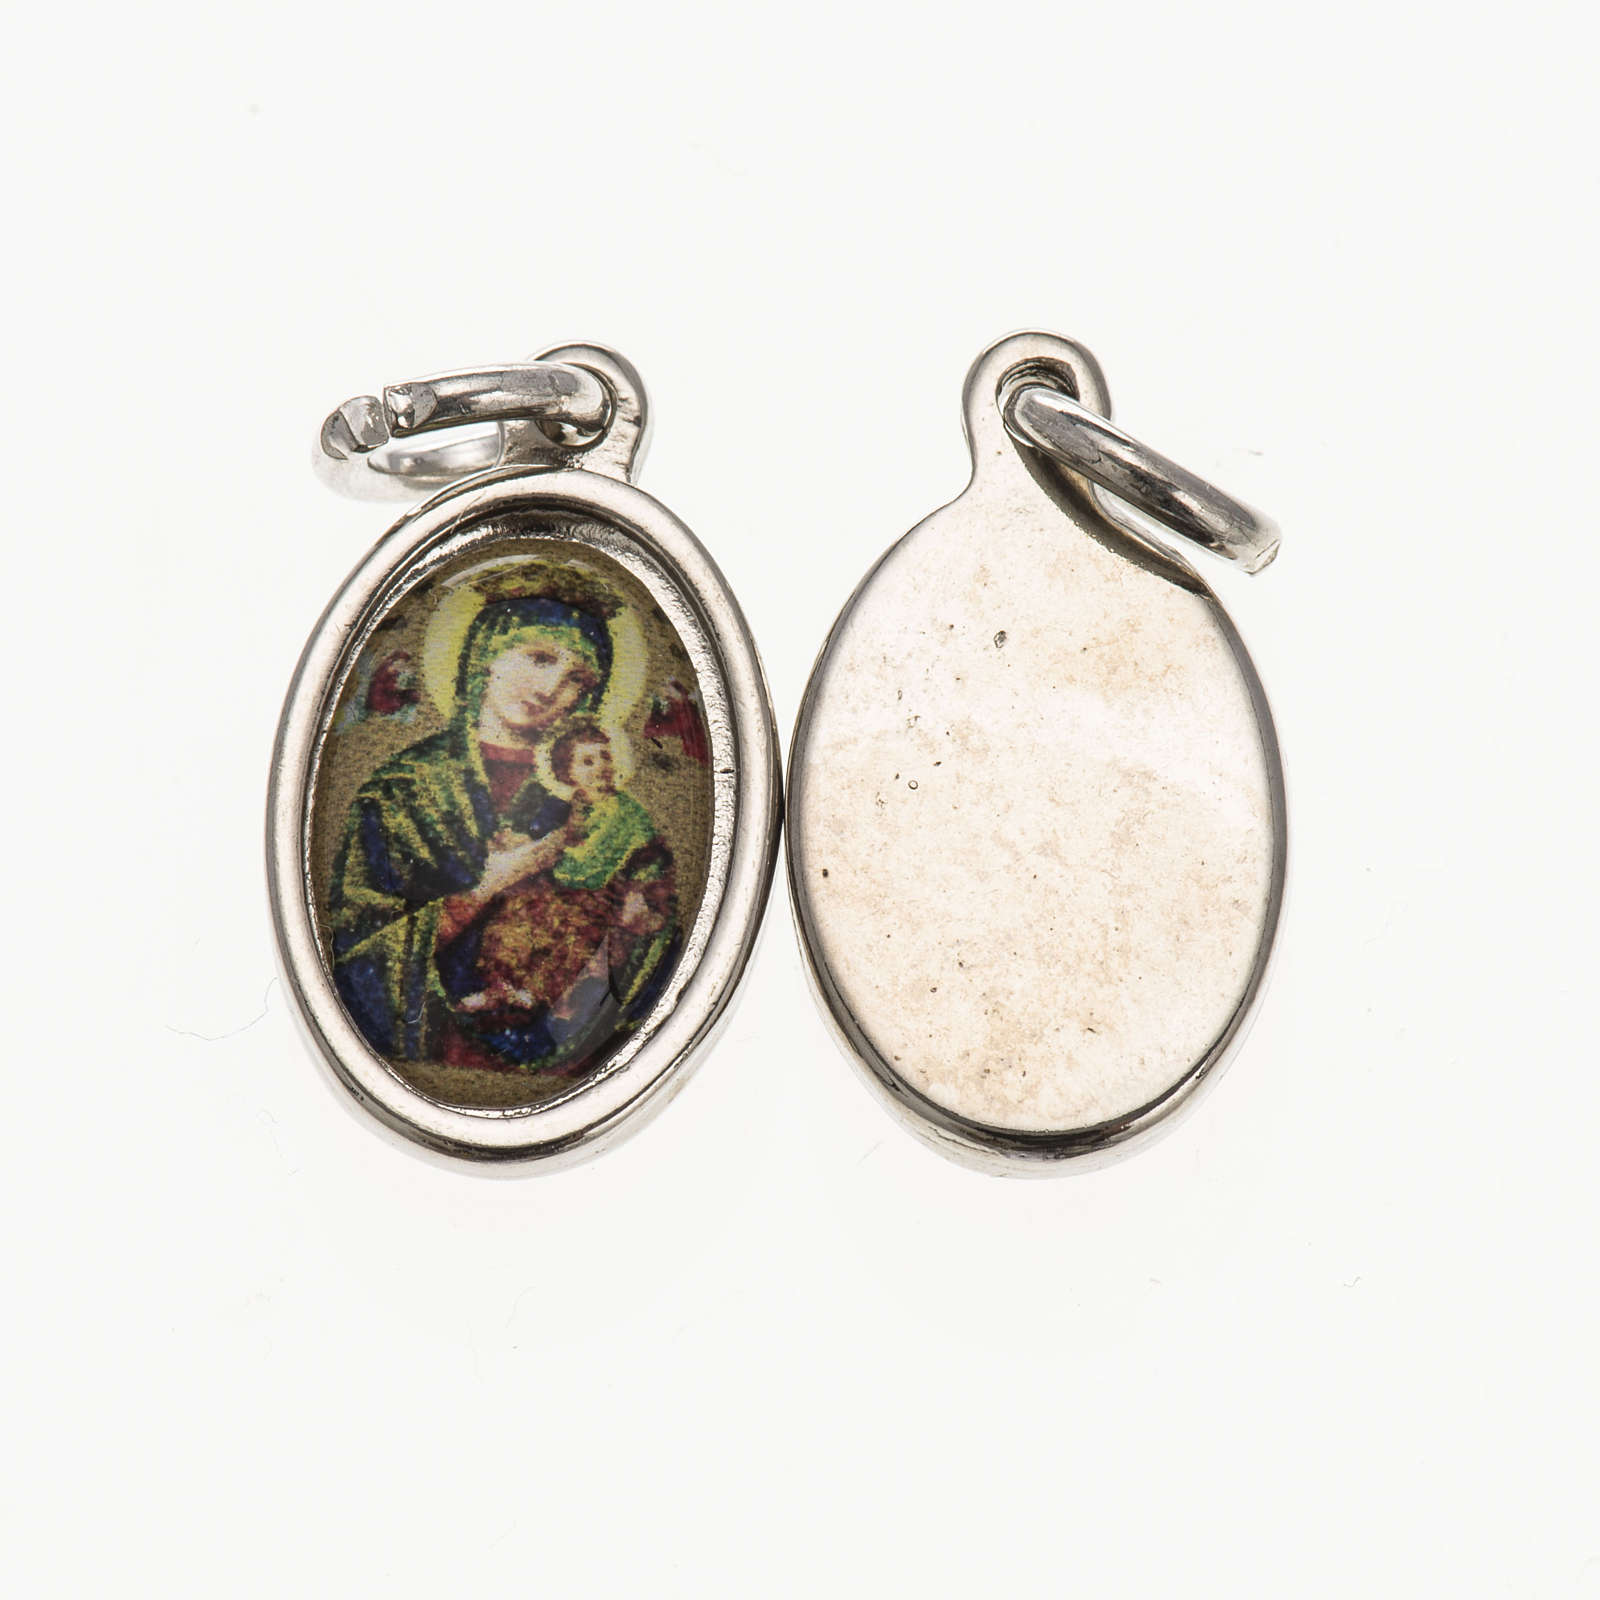 Our Lady of Perpetual Help in silver metal and resin 1.5x1cm 4